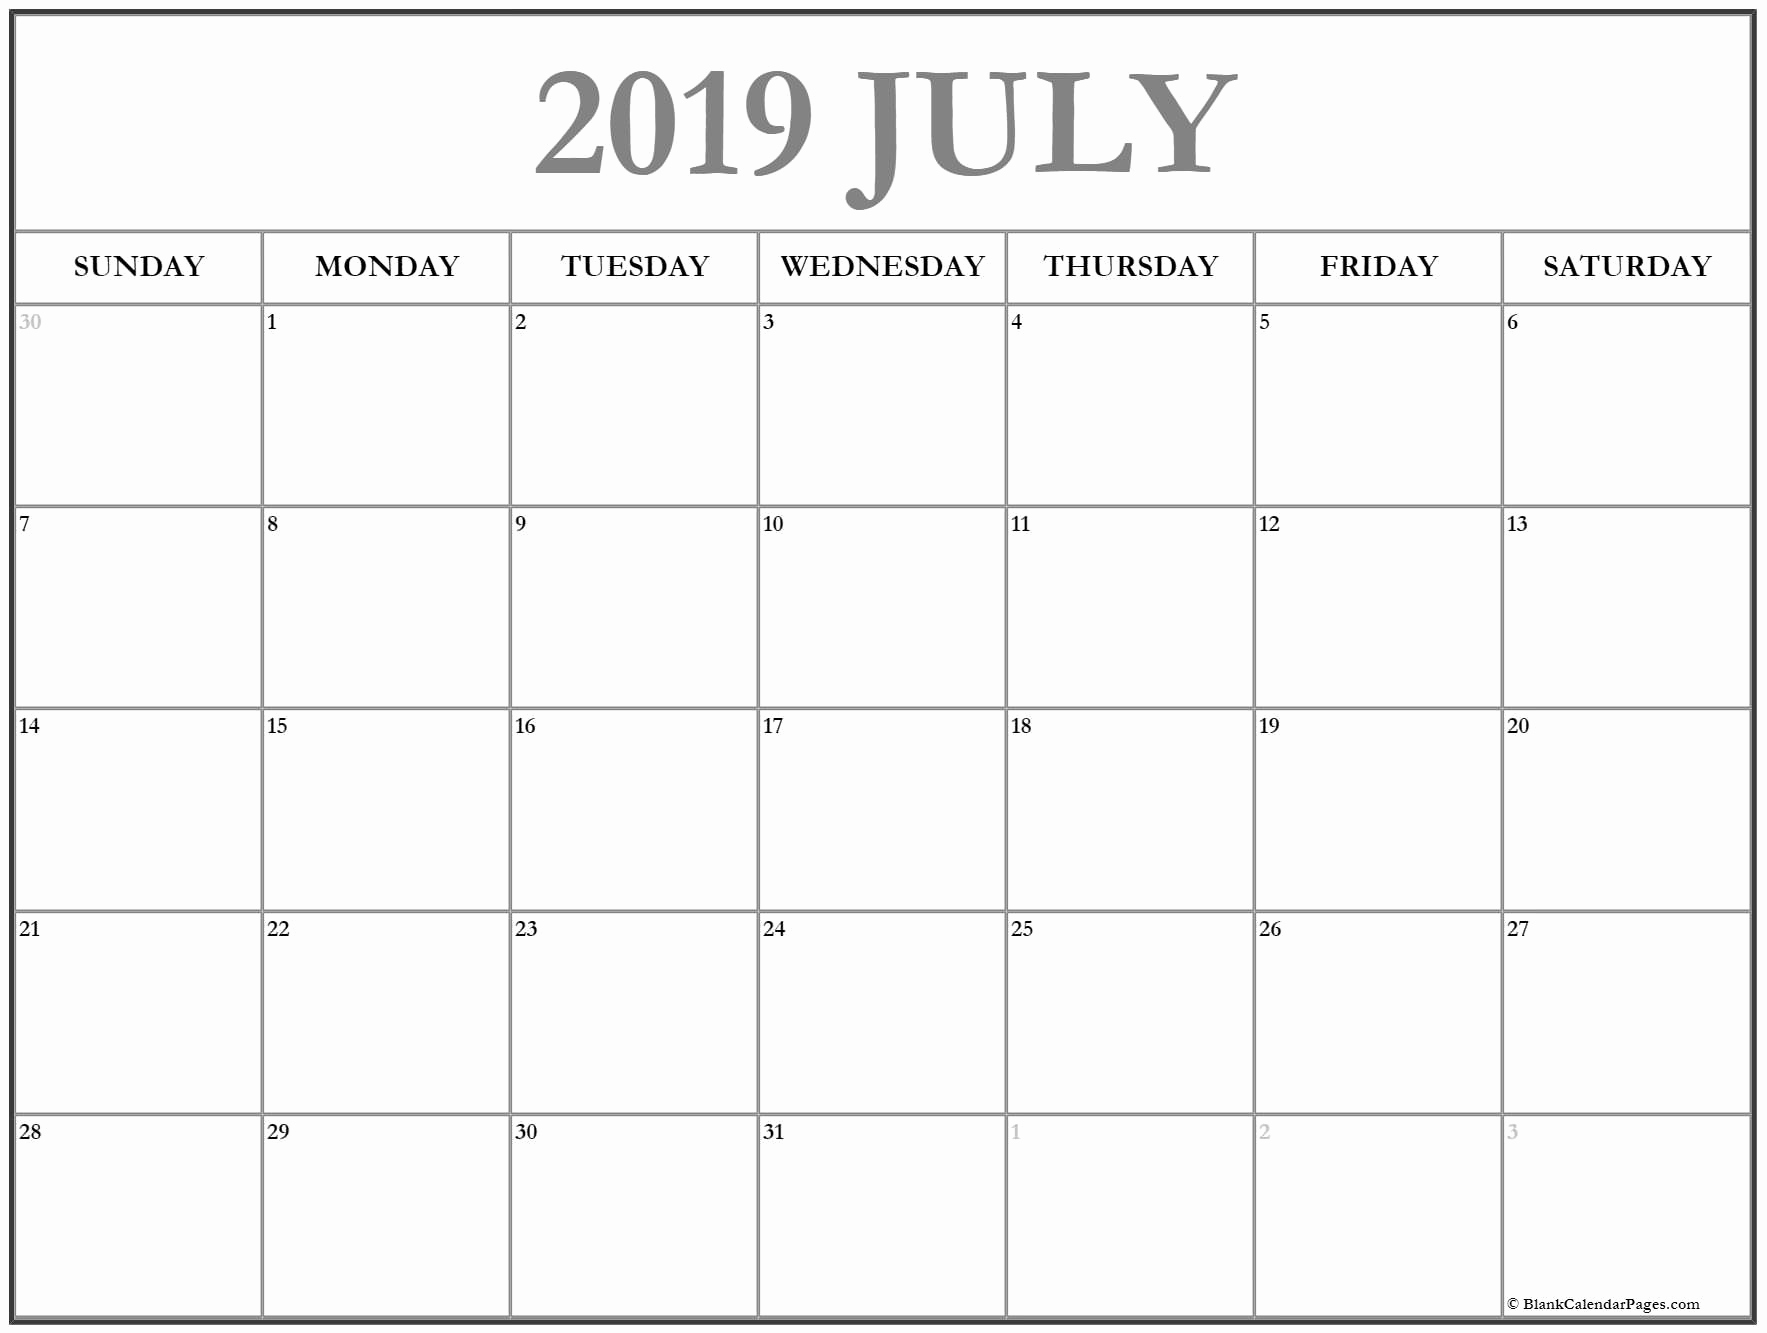 July 2019 Printable Calendar Template